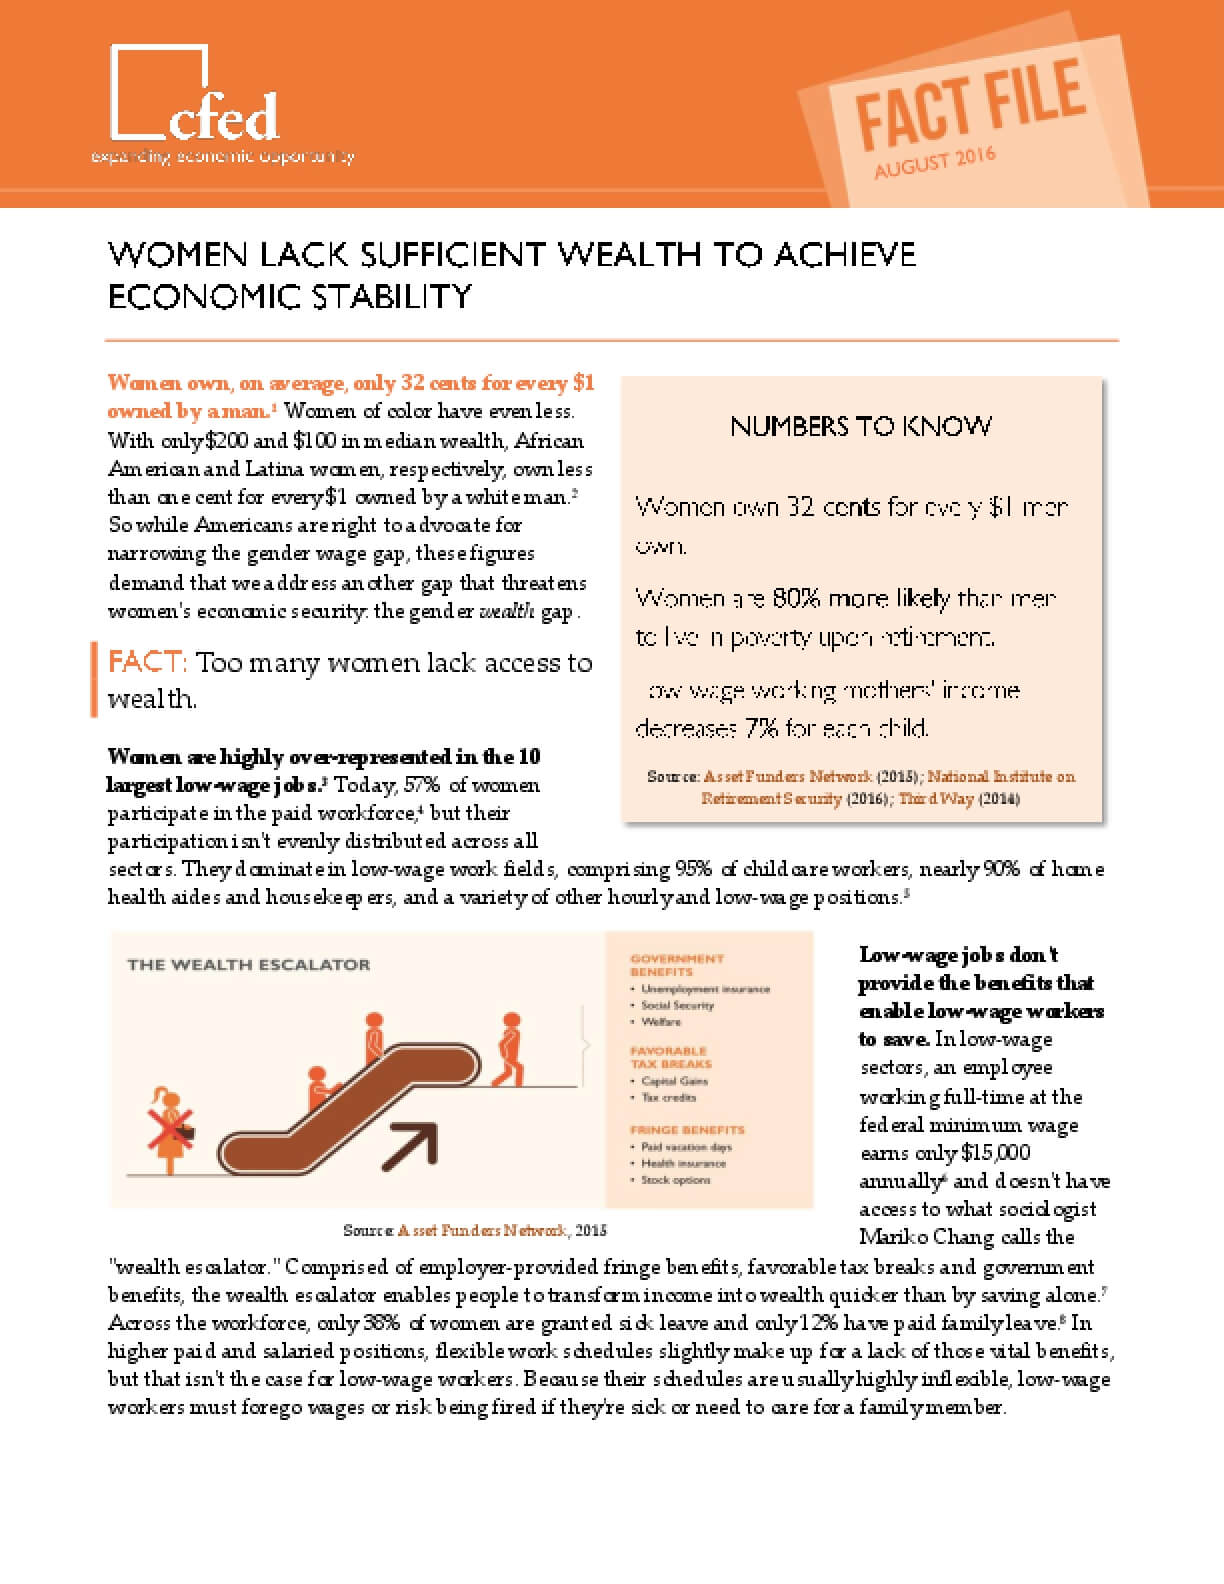 Women Lack Sufficient Wealth to Achieve Economic Stability